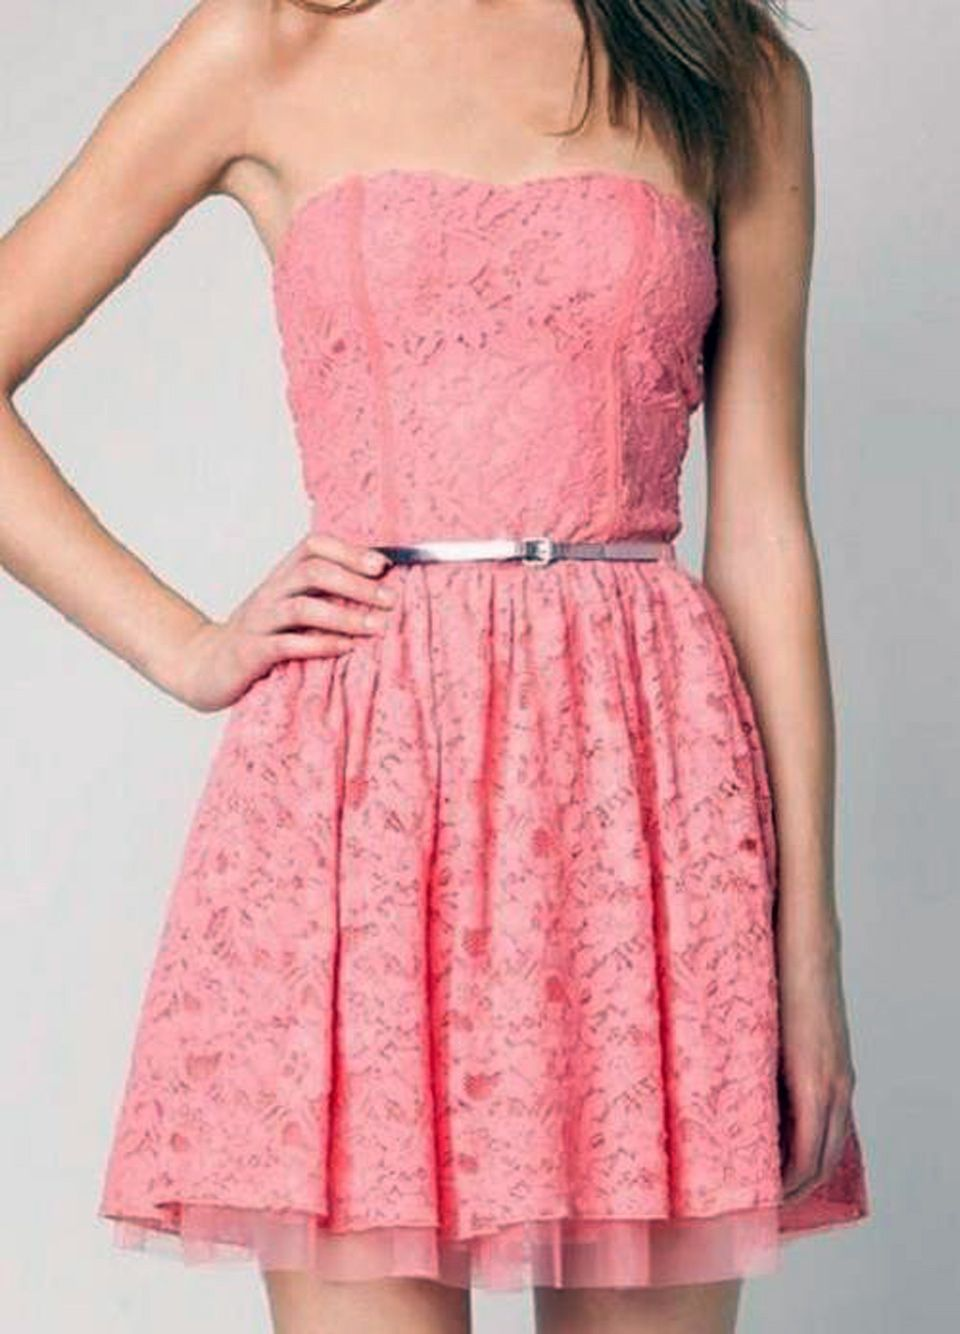 cute pink lace tumblr | Cute Pink Dress Tumblr | style | Pinterest ...